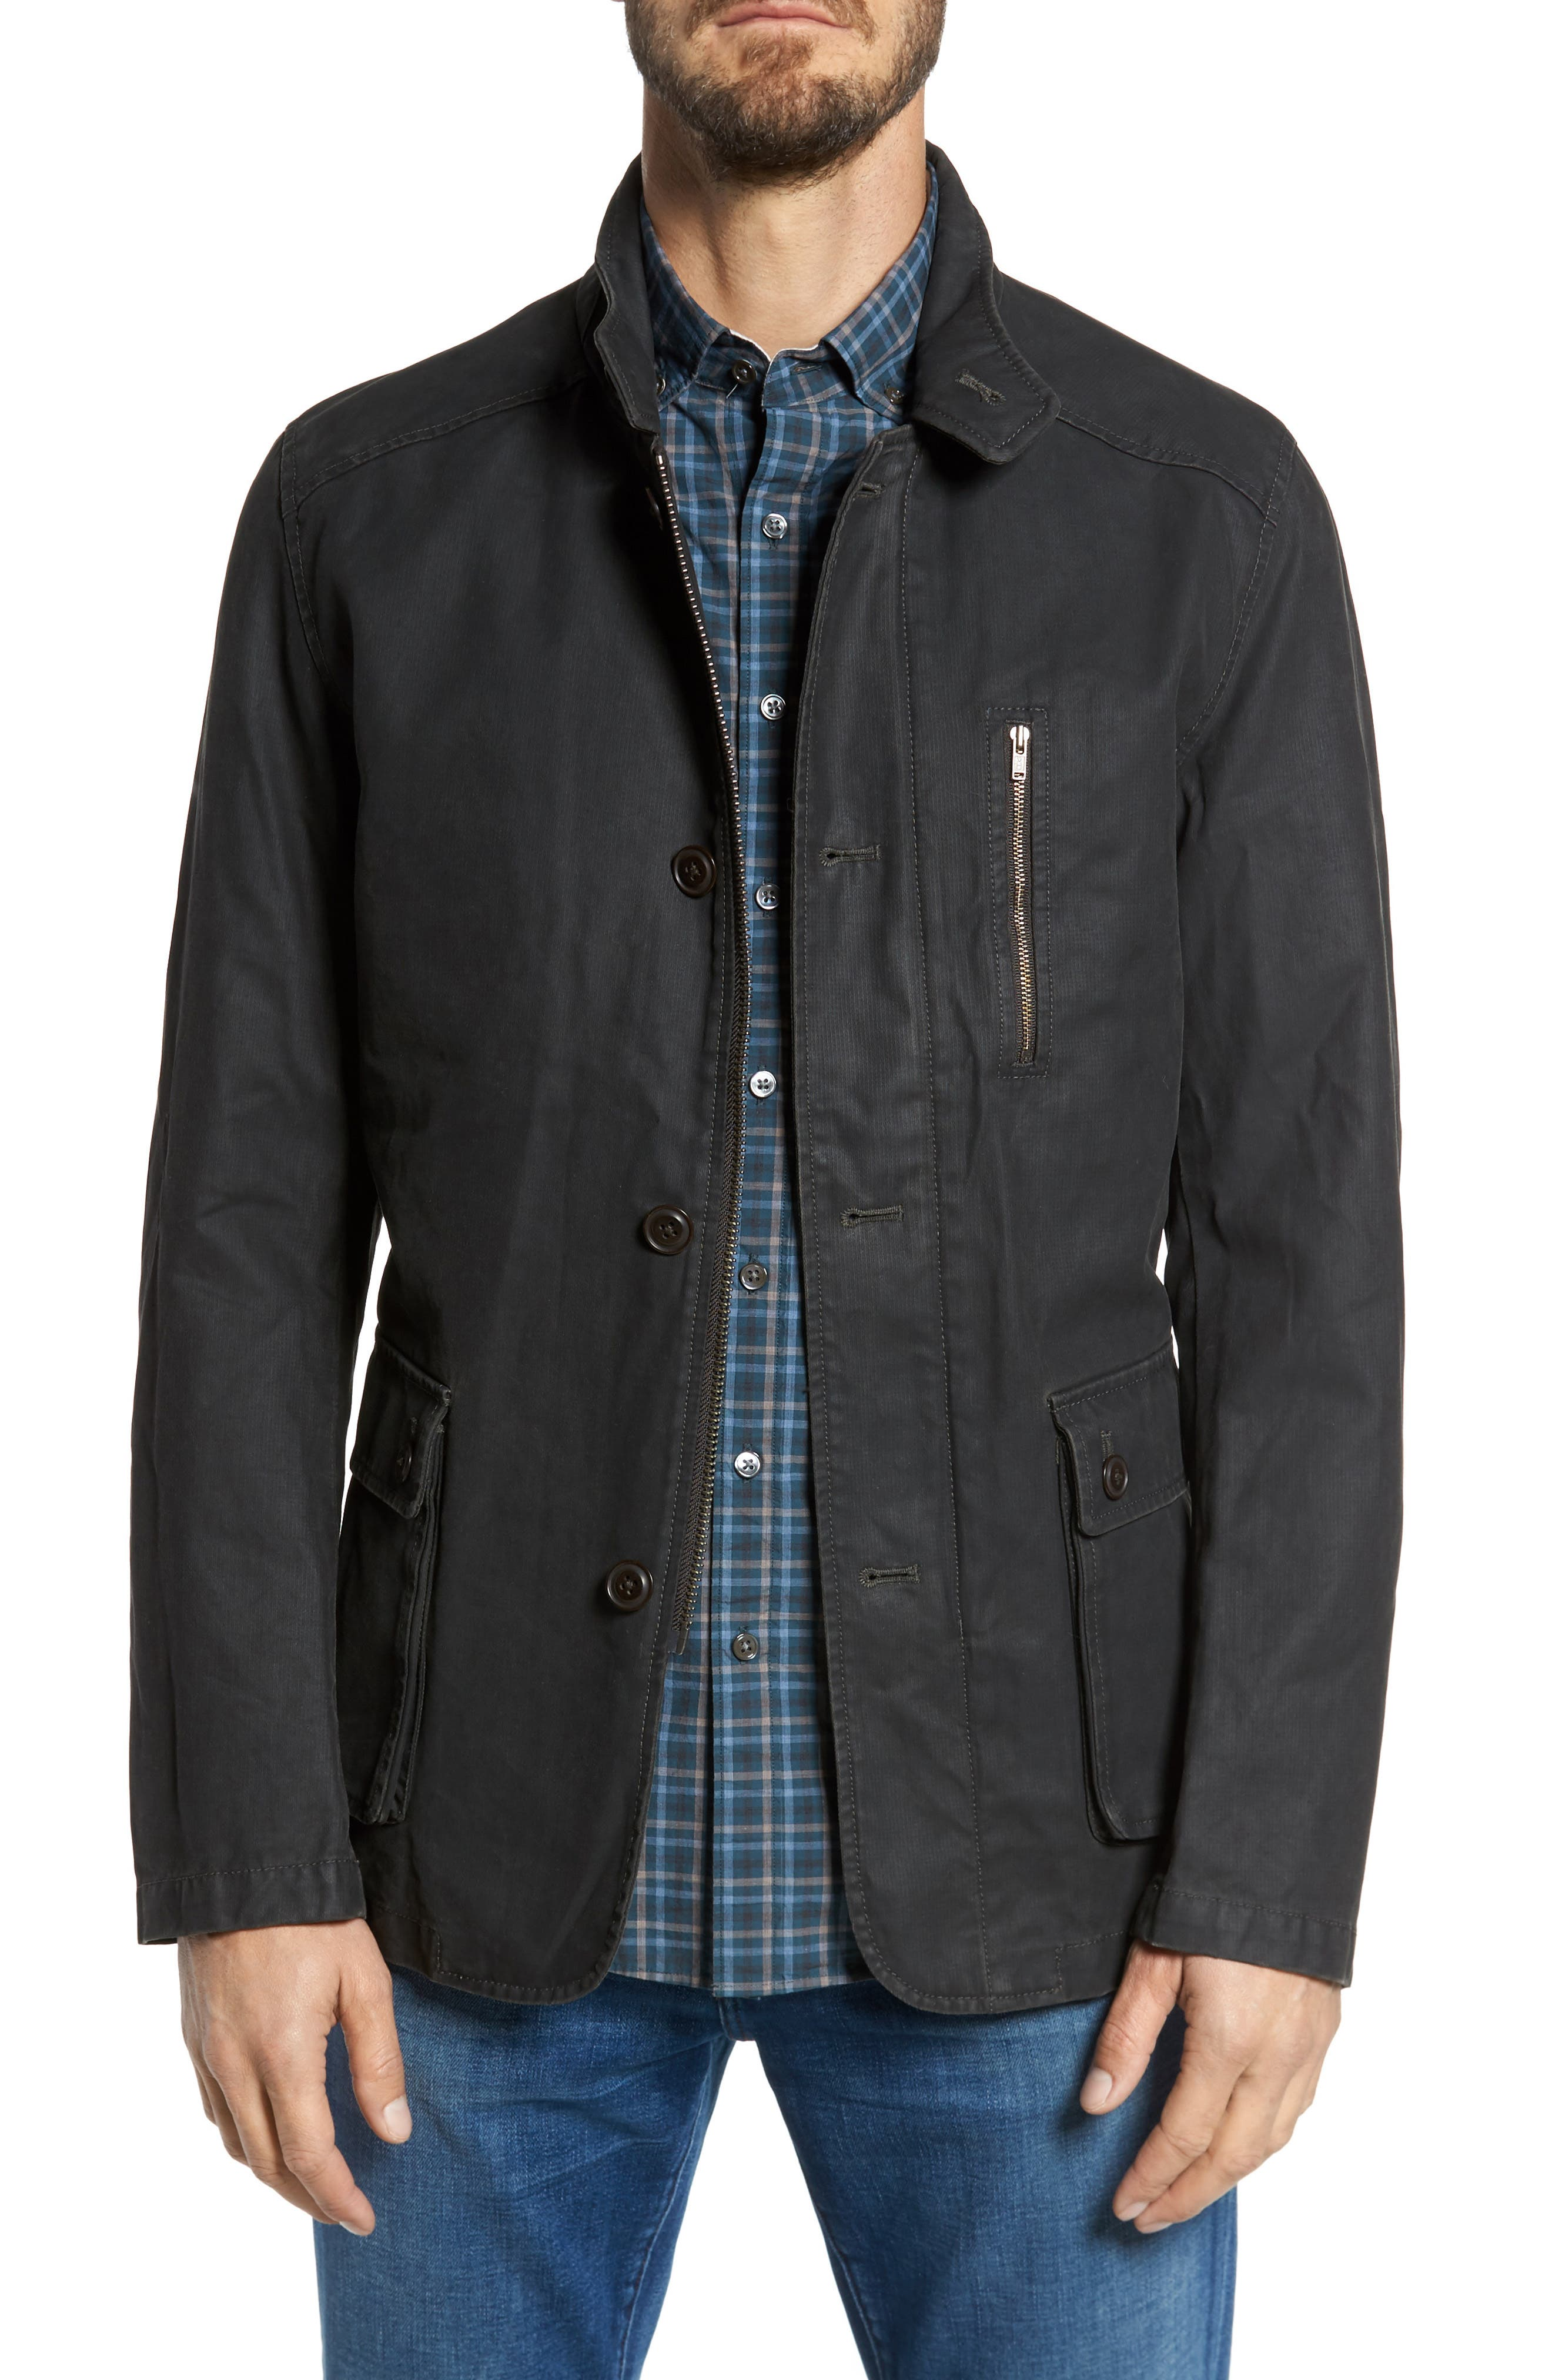 Blackmount Water-Resistant Jacket,                         Main,                         color, Bracken